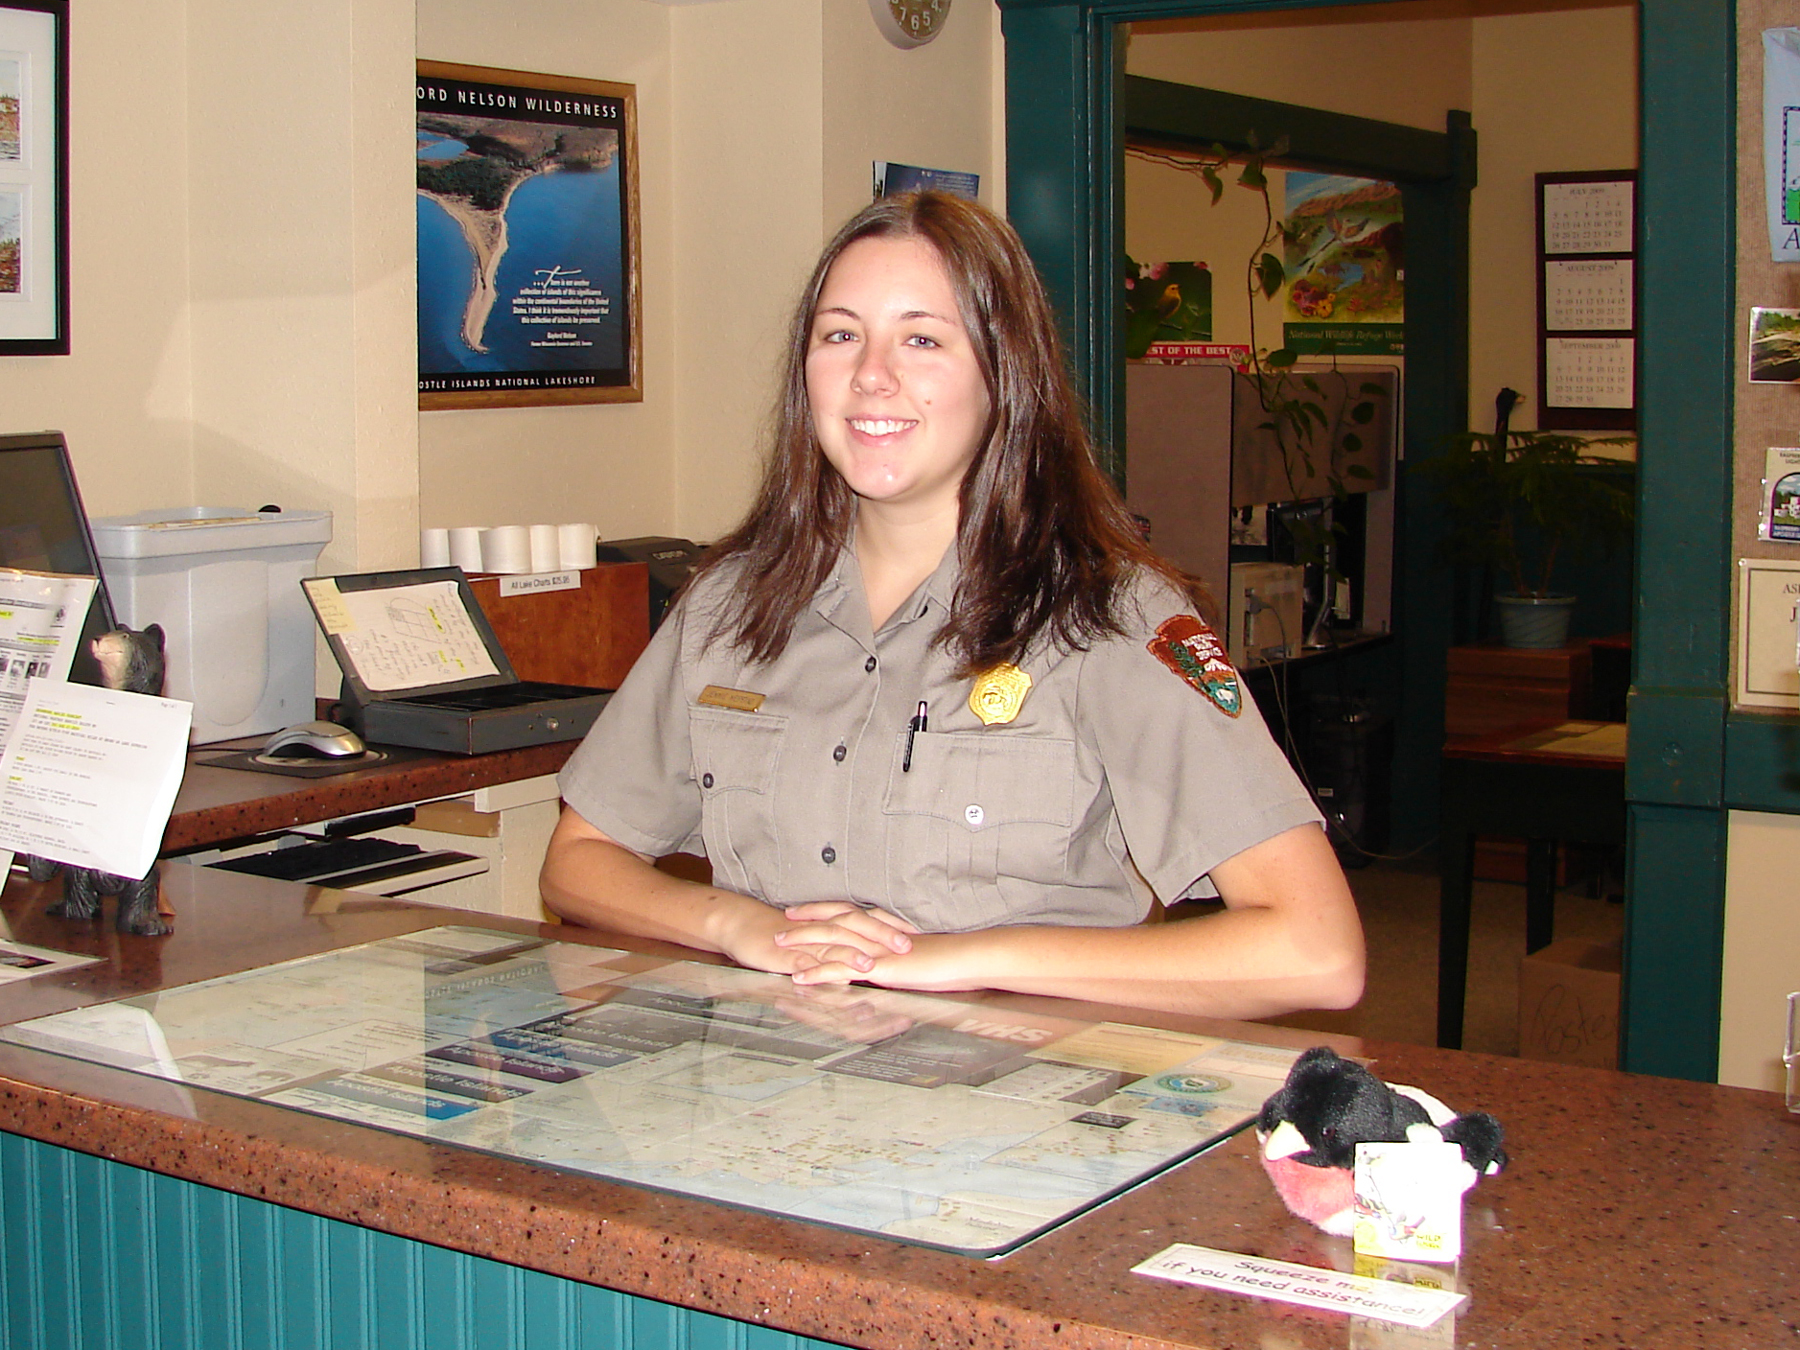 Jennie staffing the information desk at the park's Bayfield headquarters